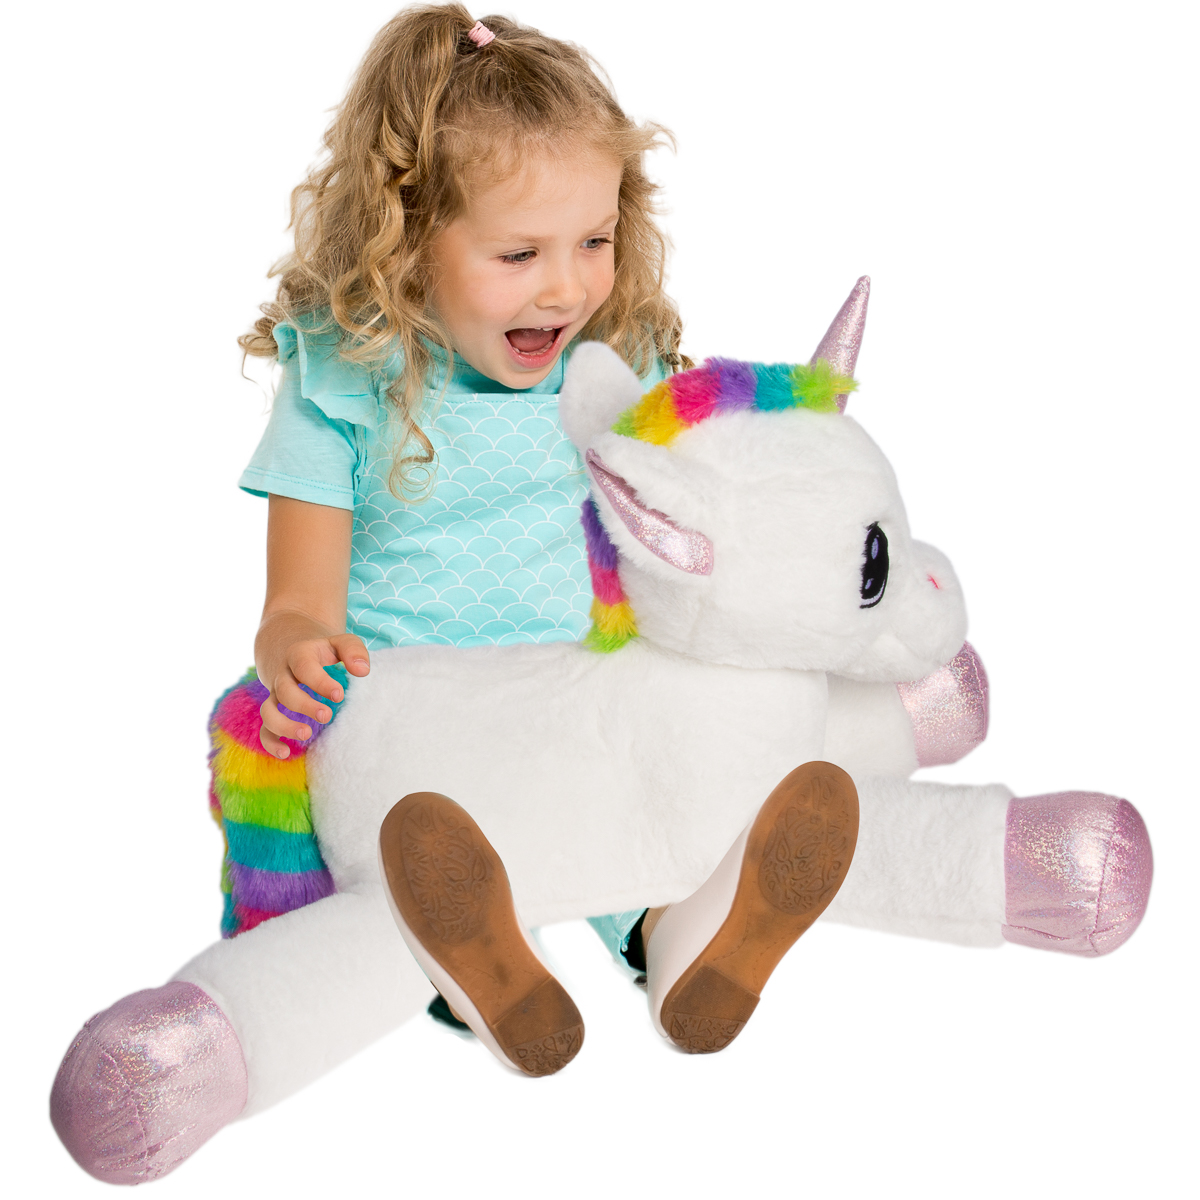 Gitzy 25 Inch Large Unicorn Stuffed Animal for Kids Adults Toddler Plush Toy Pillow Home Travel